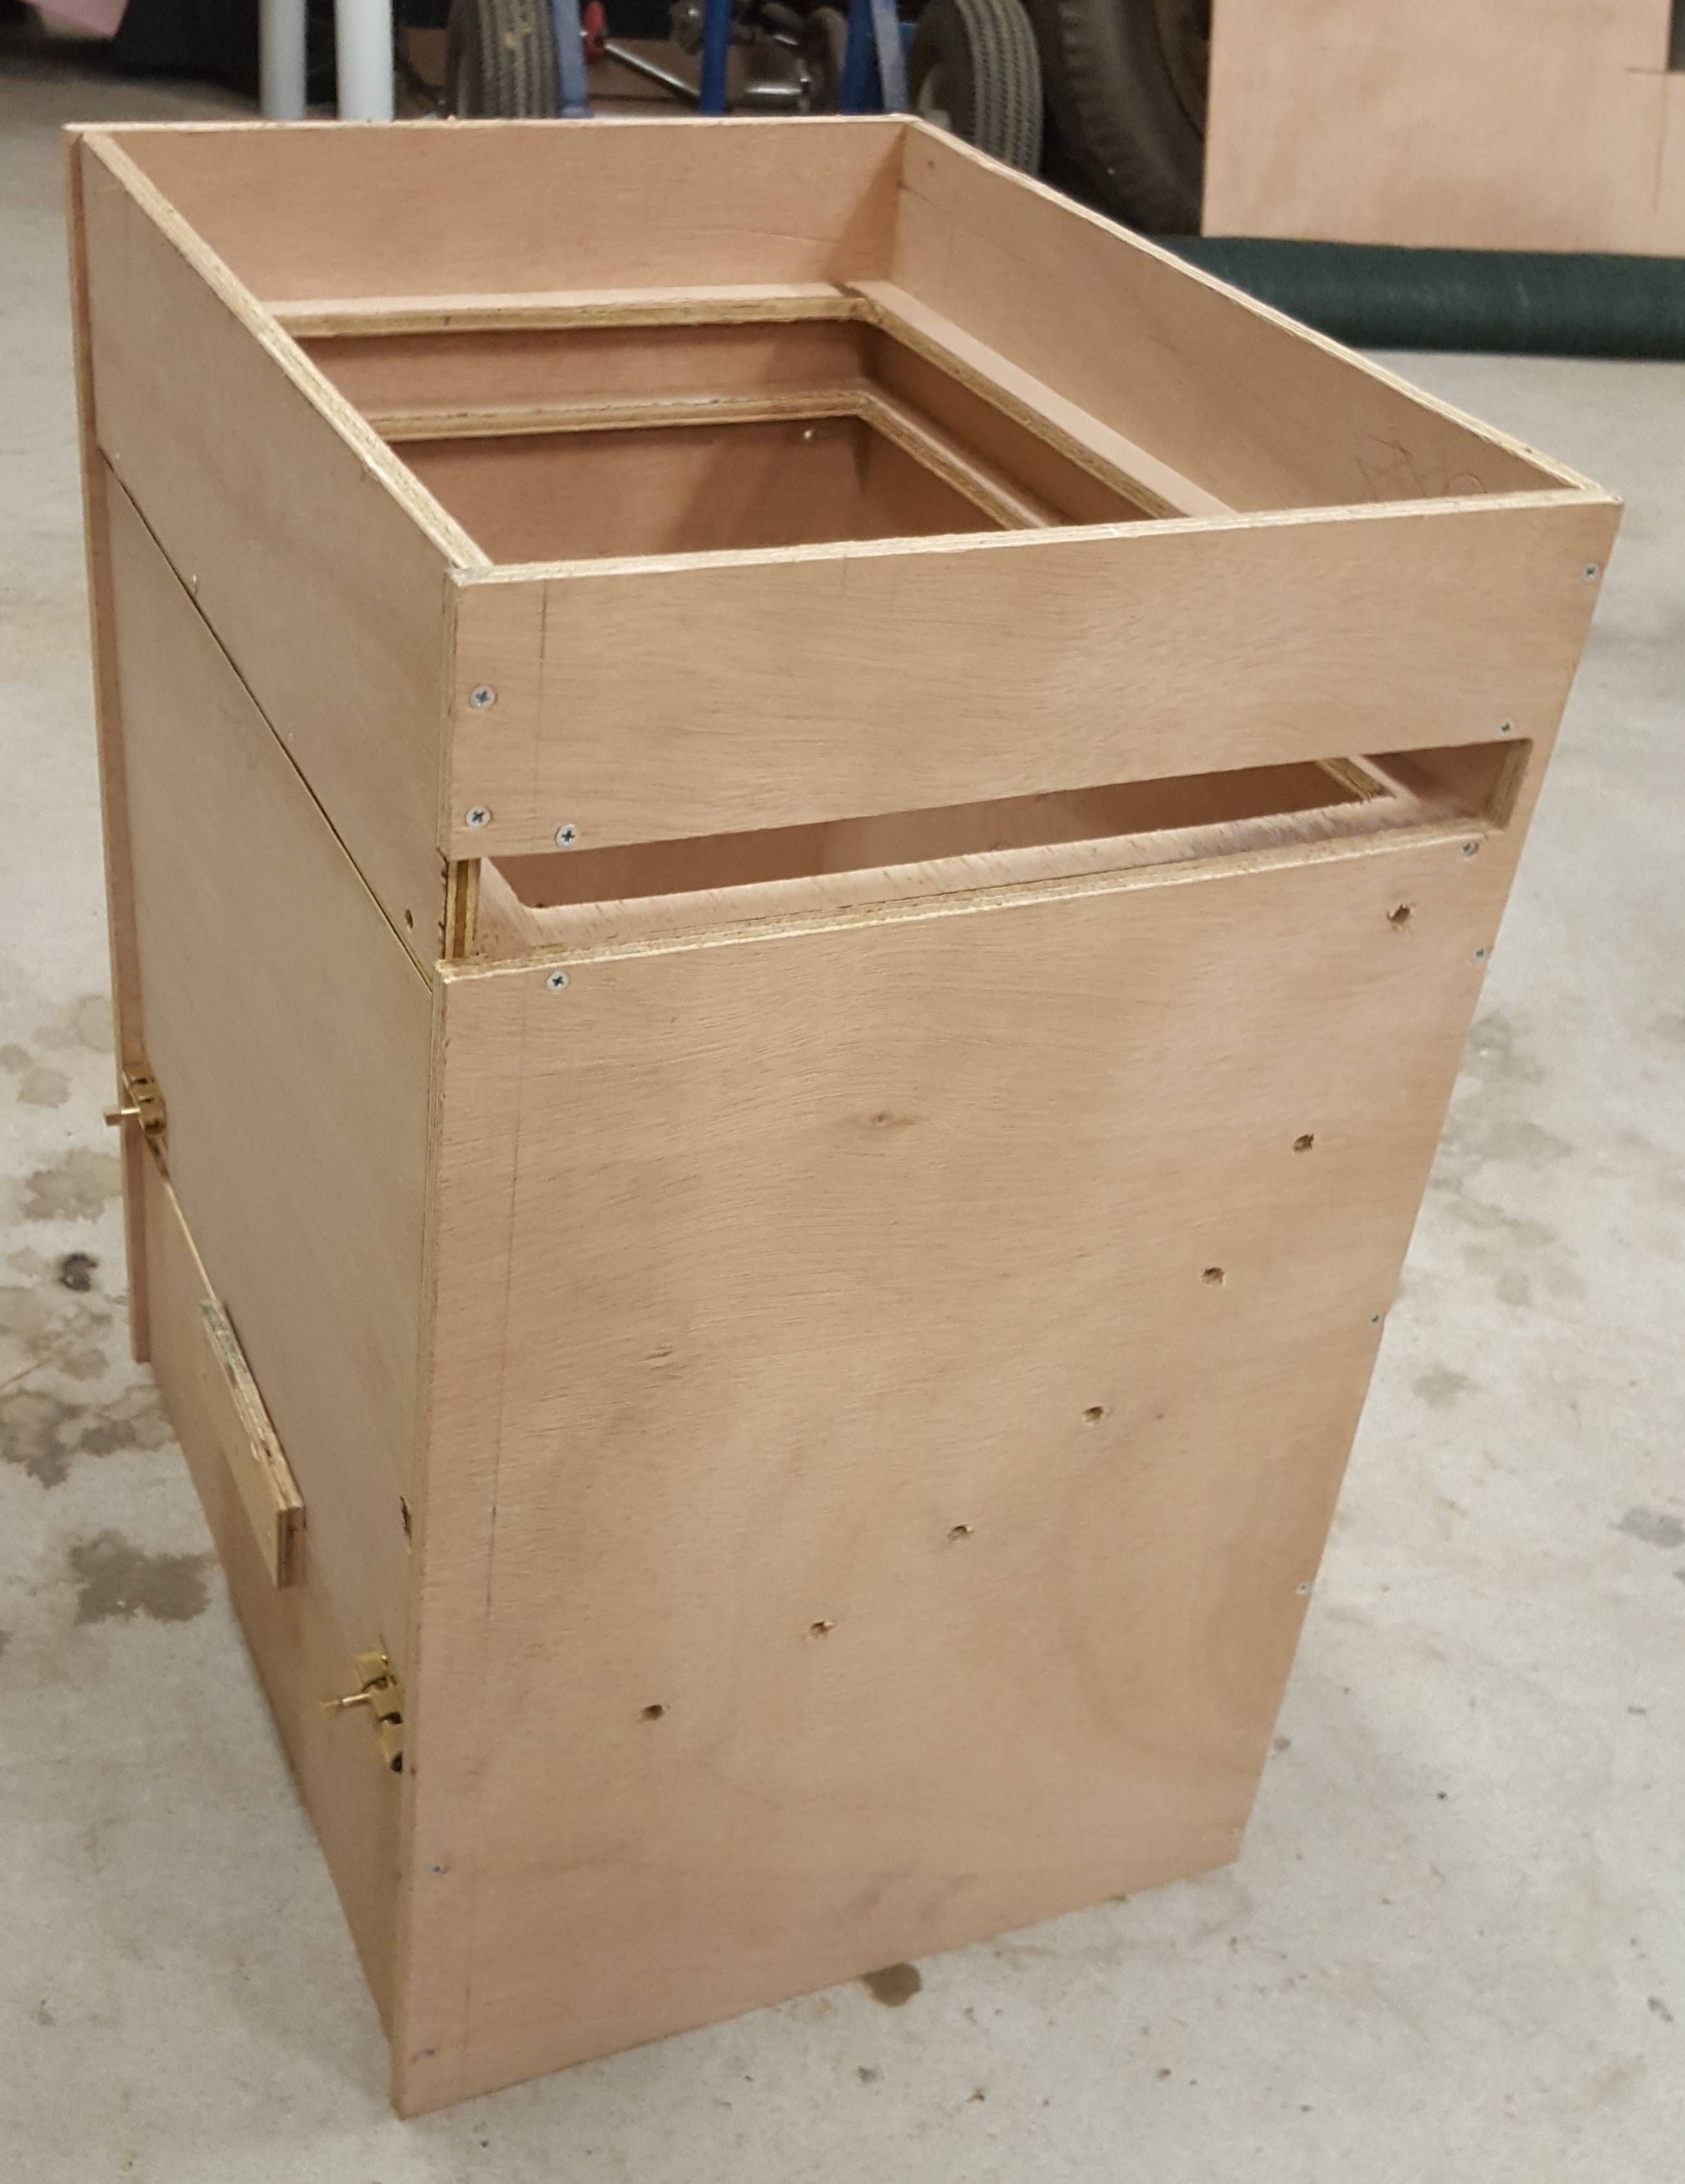 Built an air mixing box for my shipping container fruiting